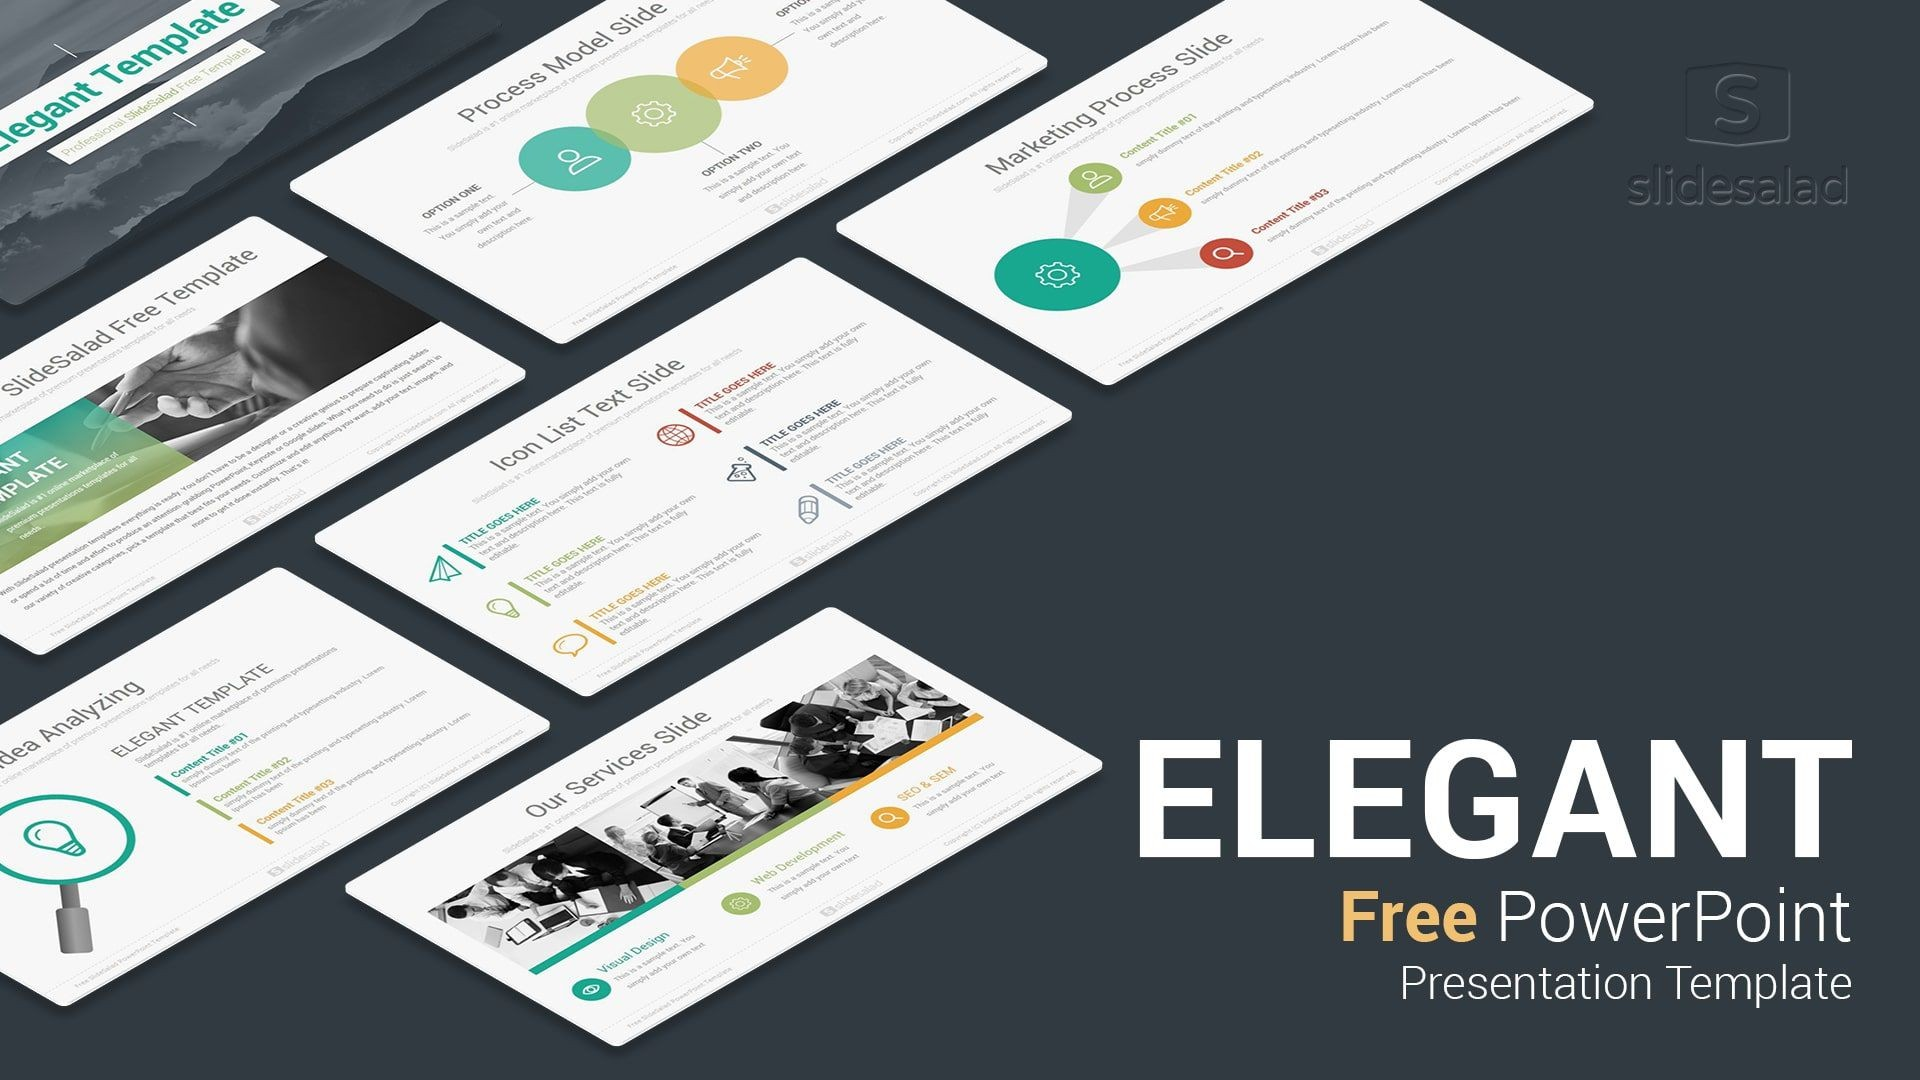 005 Outstanding Product Presentation Ppt Template Free Download Inspiration 1920